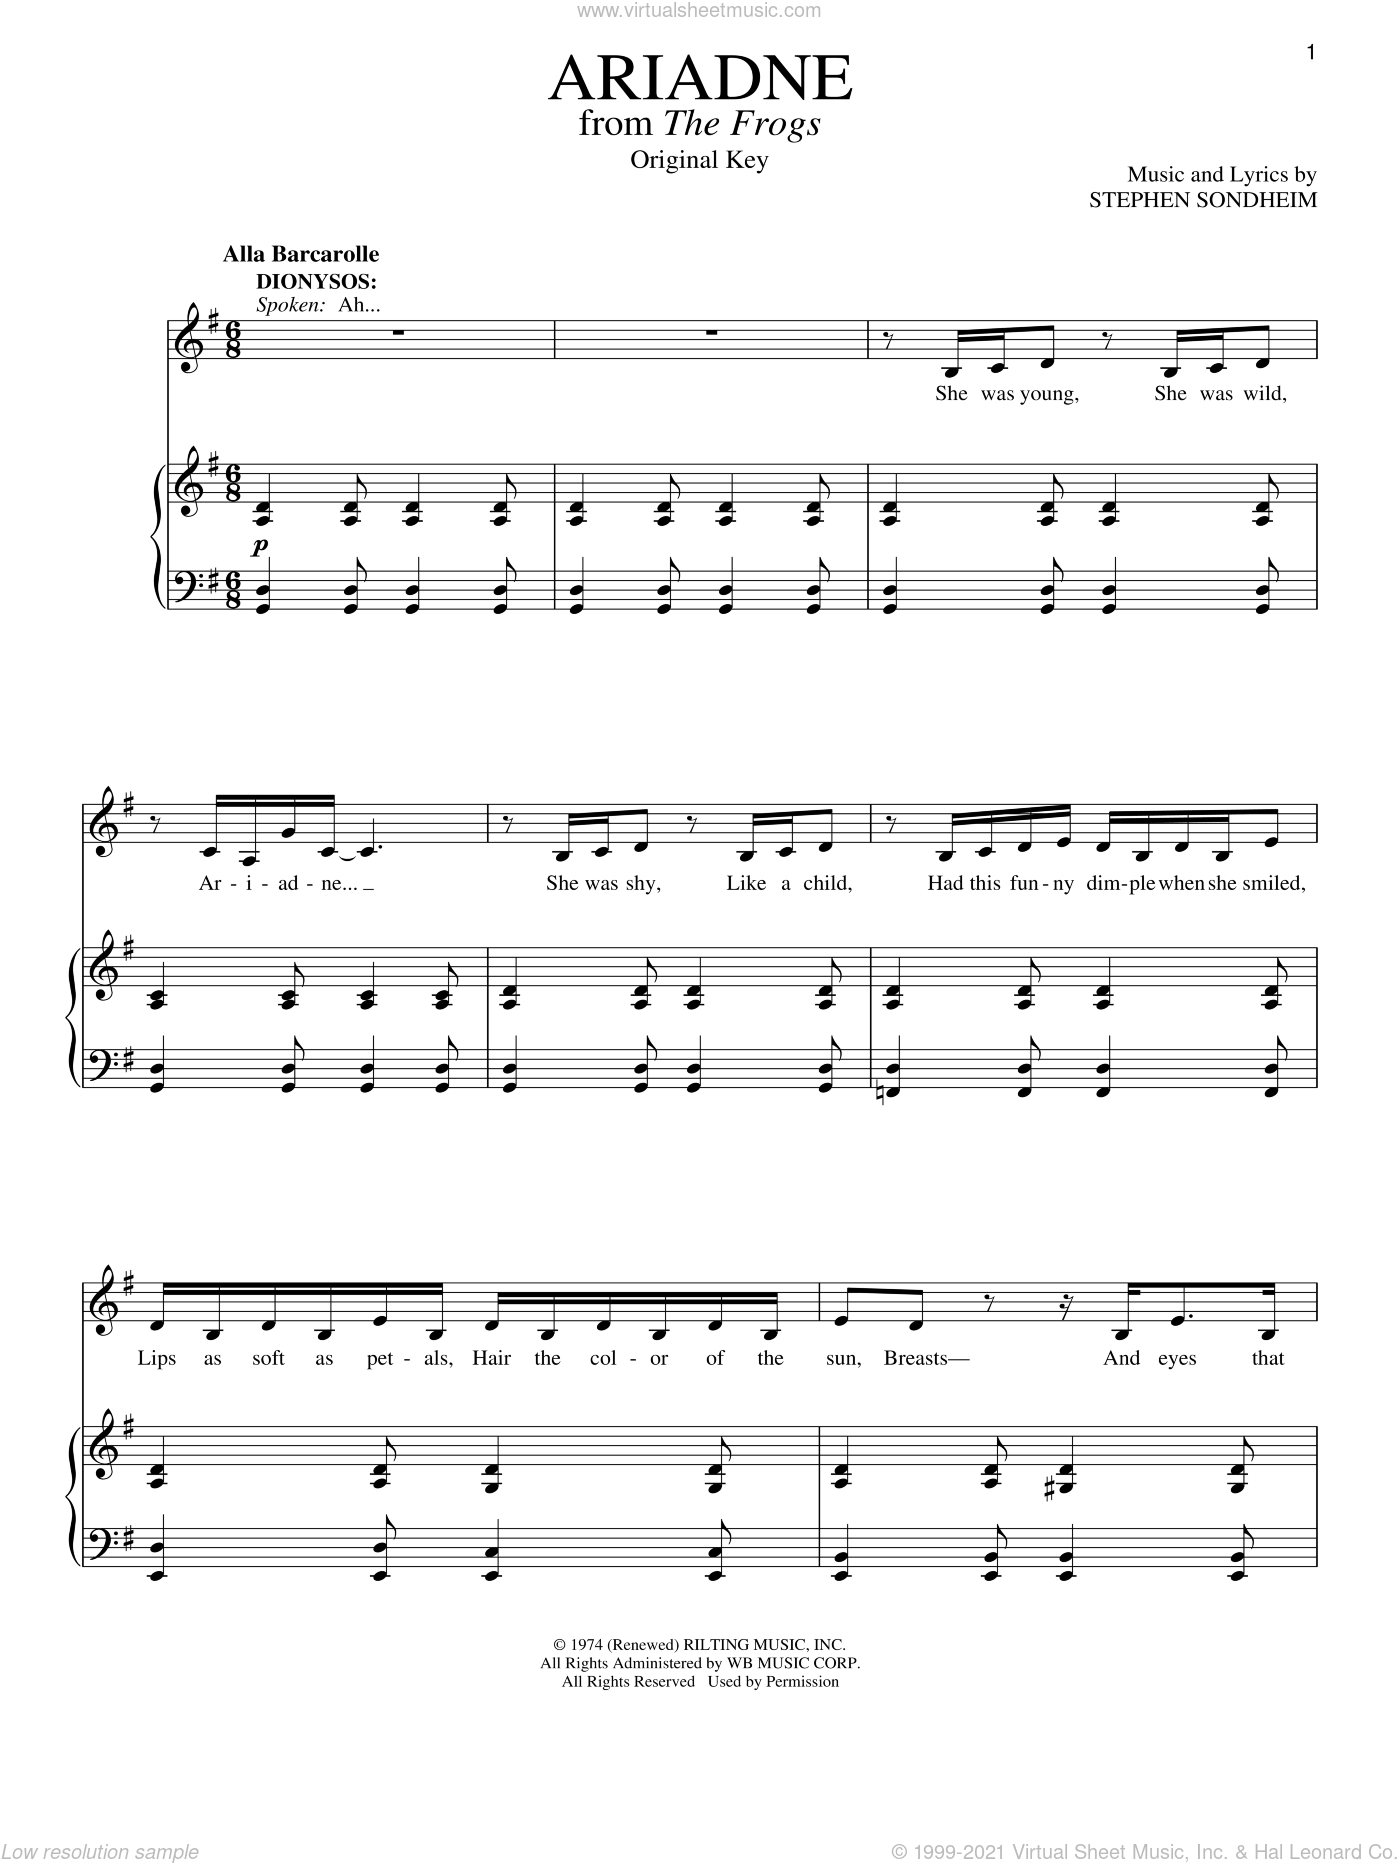 Ariadne sheet music for voice and piano by Stephen Sondheim, intermediate skill level